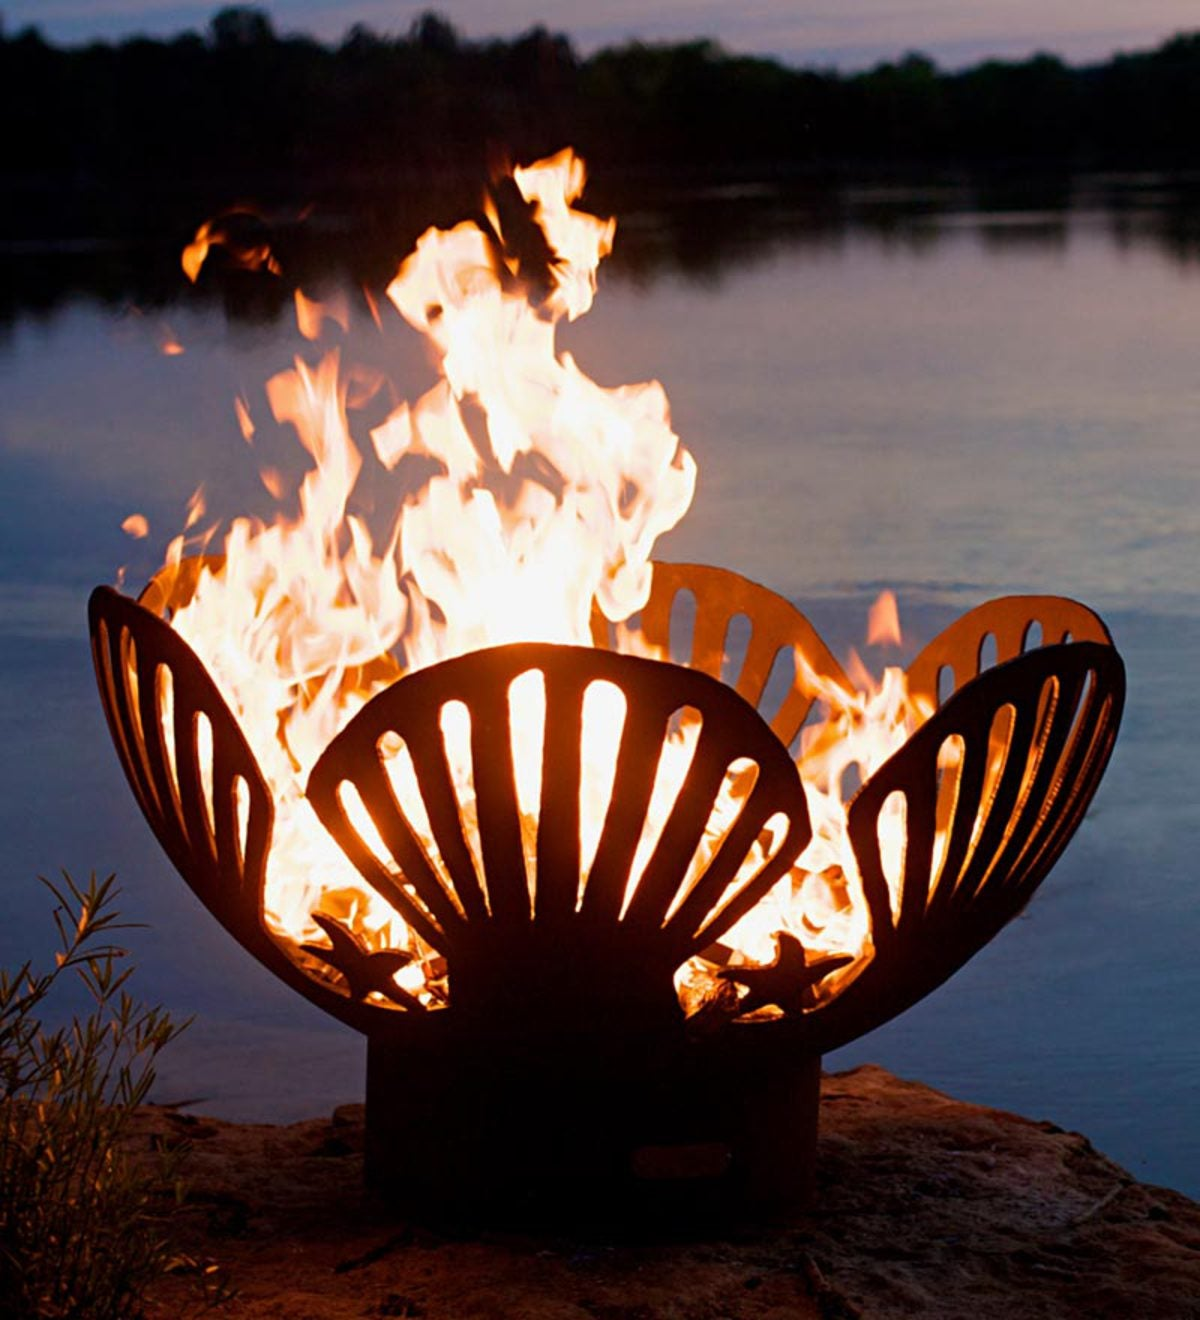 American-Made Firepit Art Barefoot Beach Seashells And Starfish Fire Pit